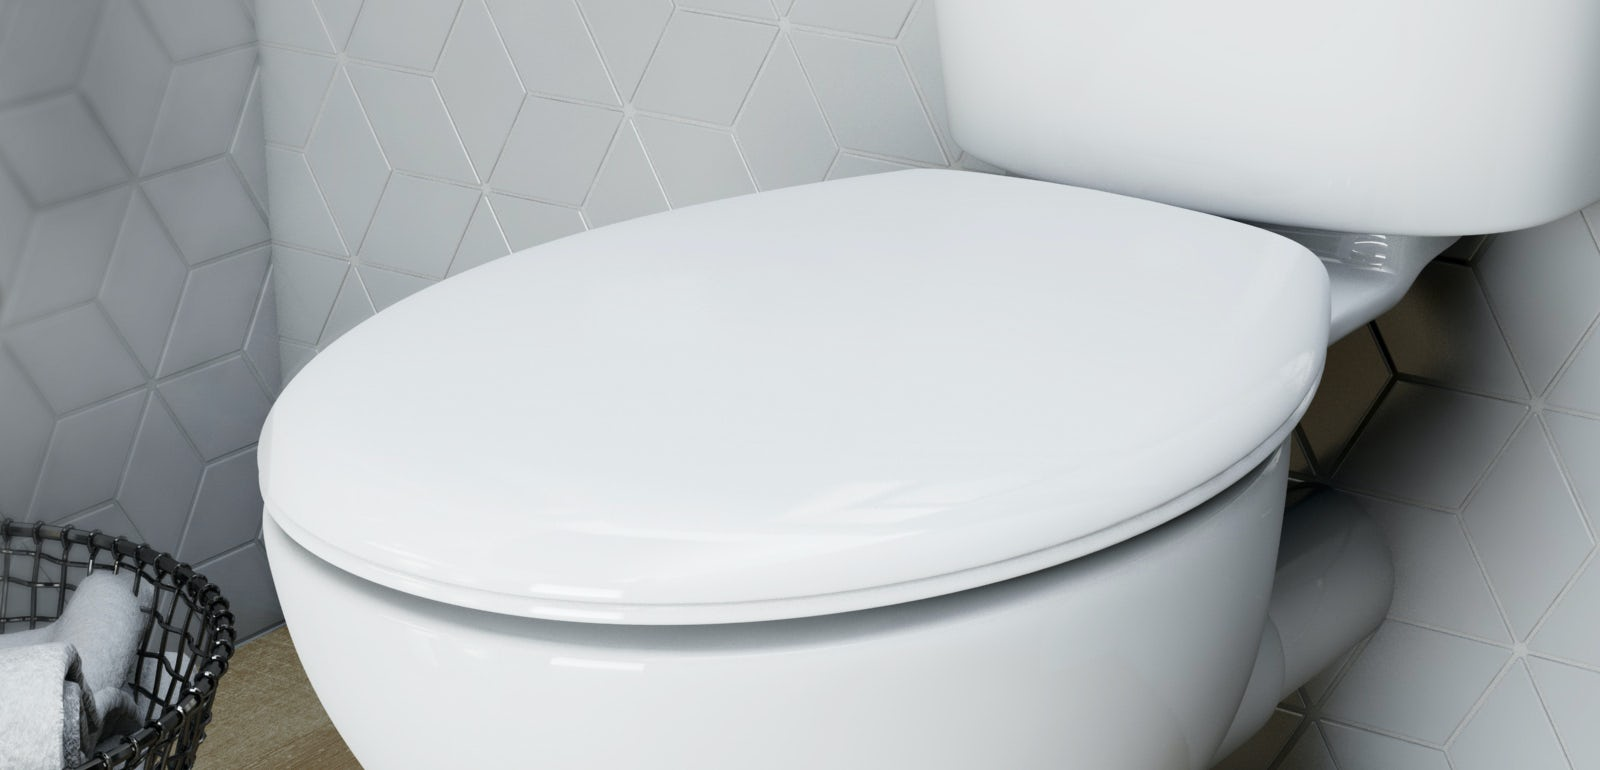 Toilet Seat Sizes Uk. Are toilet seats a standard size  Toilet Seats Standard Size VictoriaPlum com